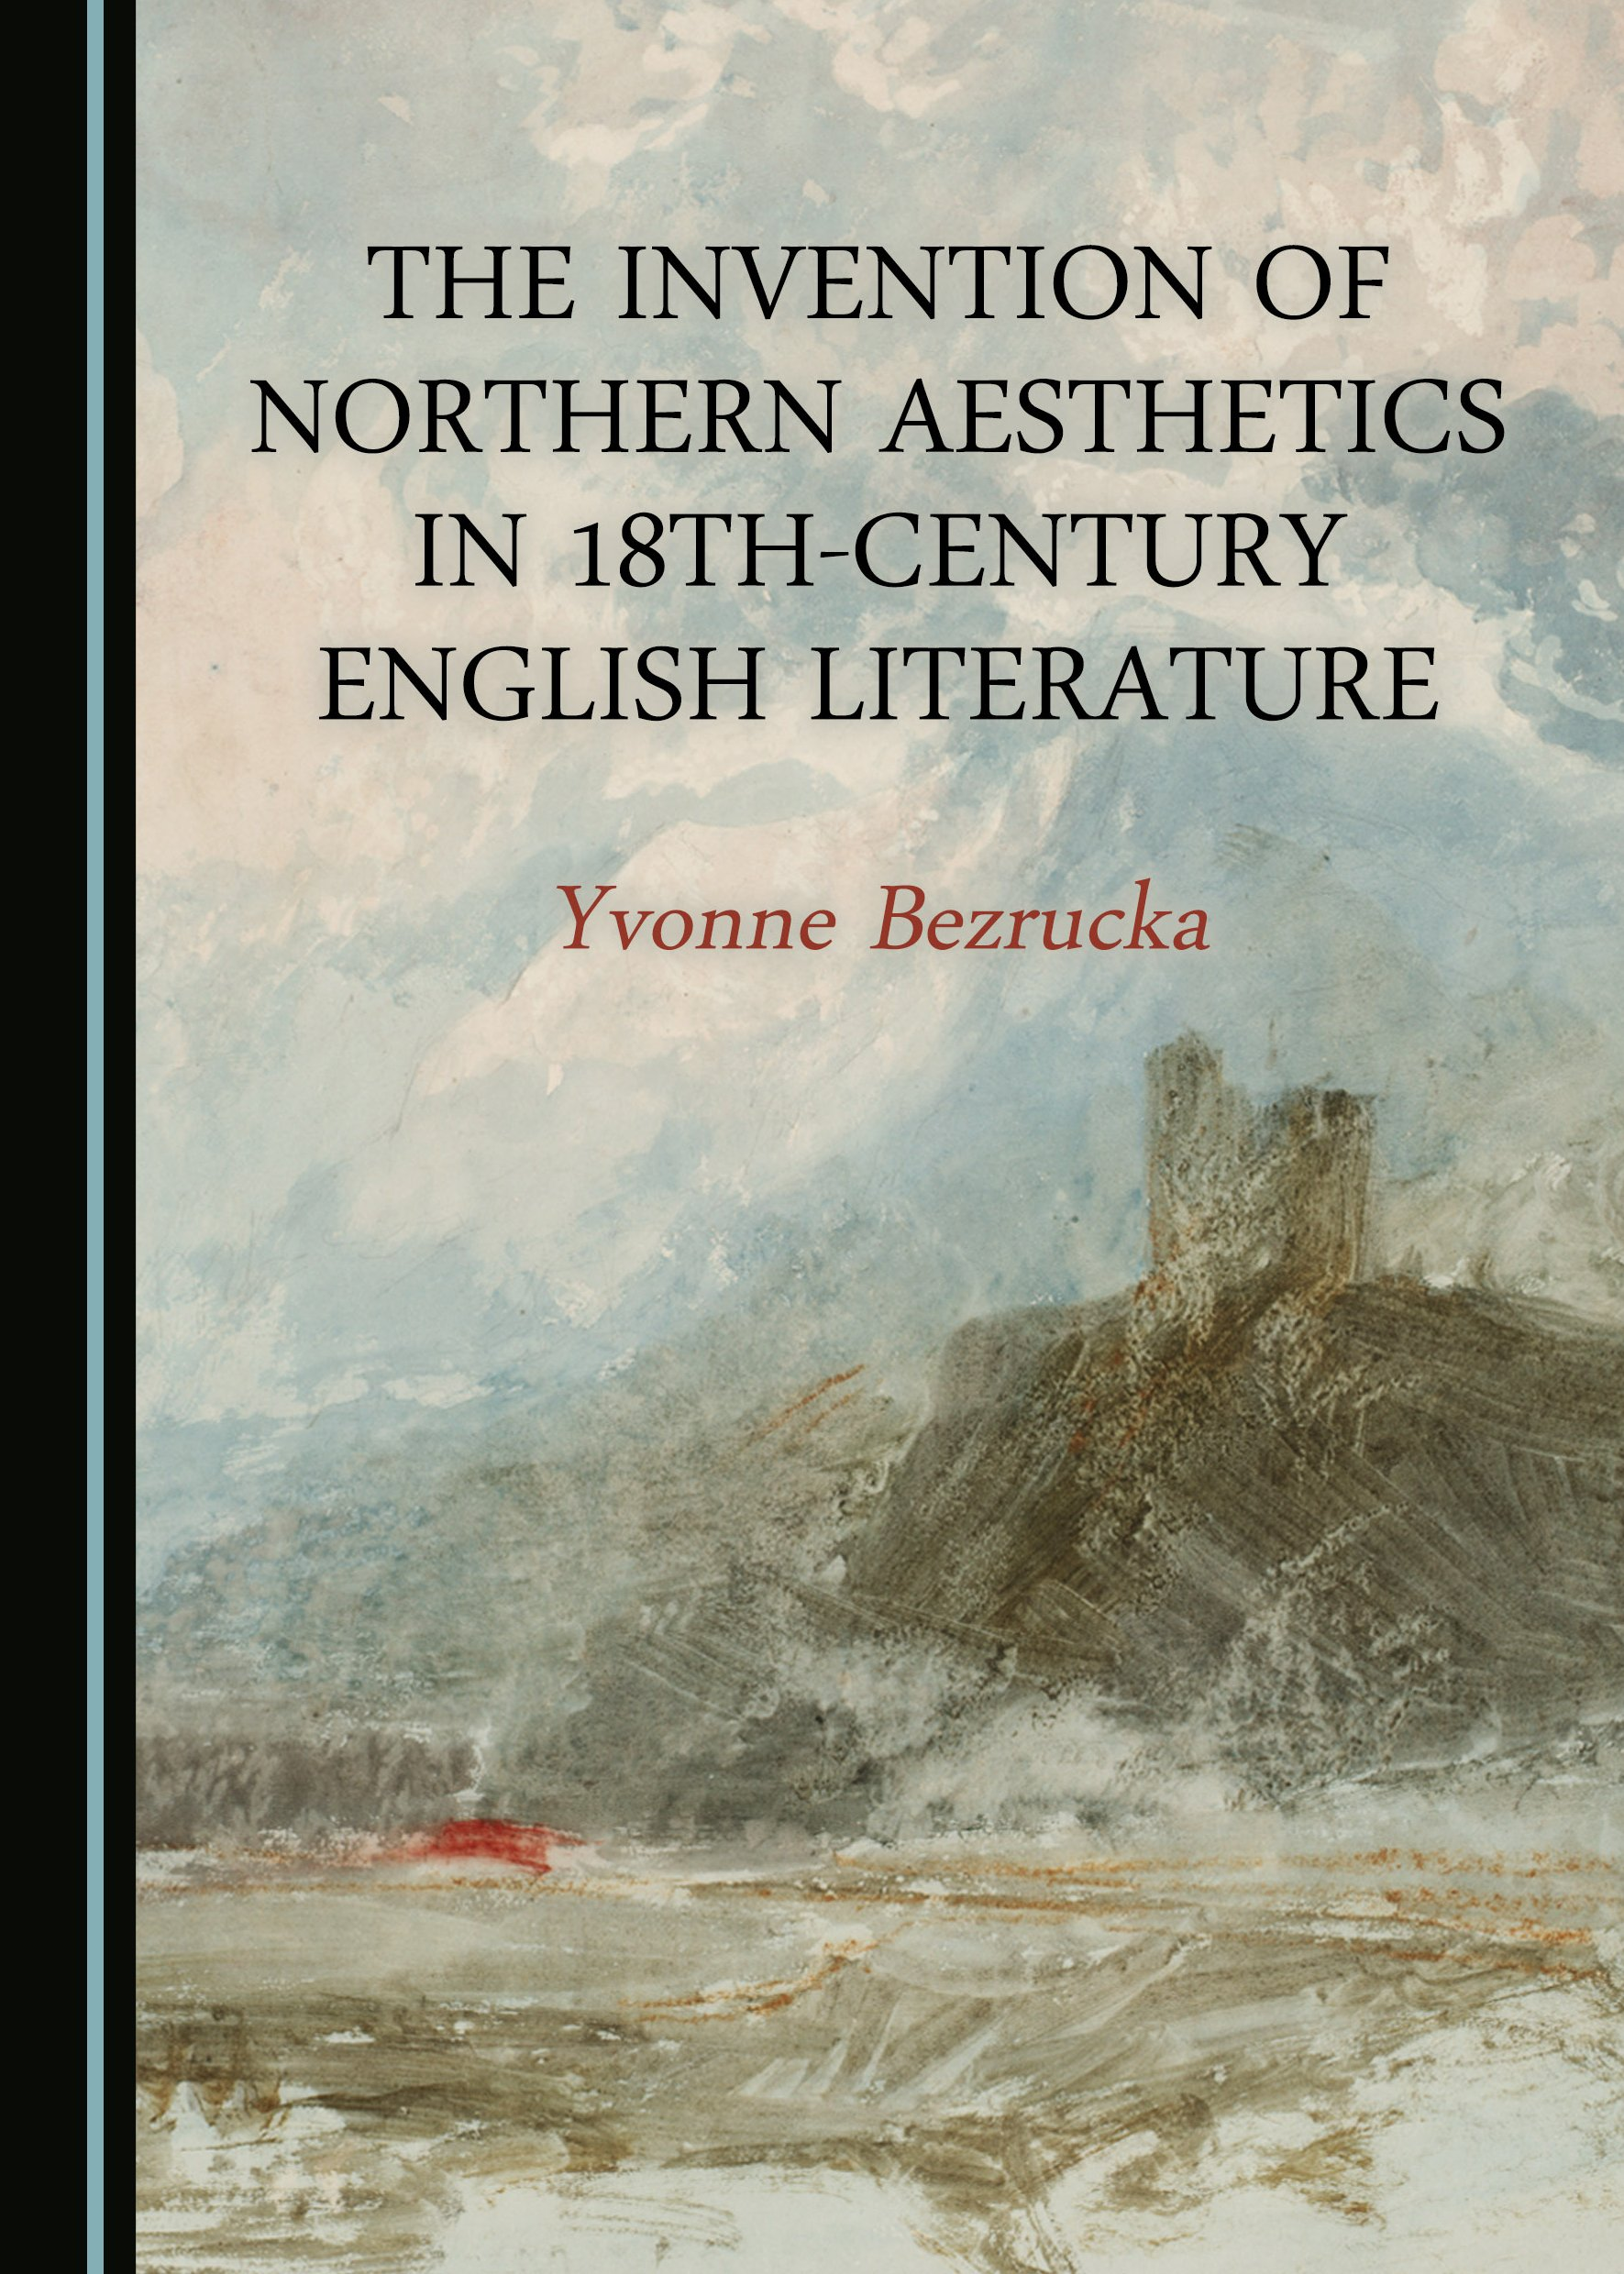 The Invention of Northern Aesthetics in 18th-Century English Literature